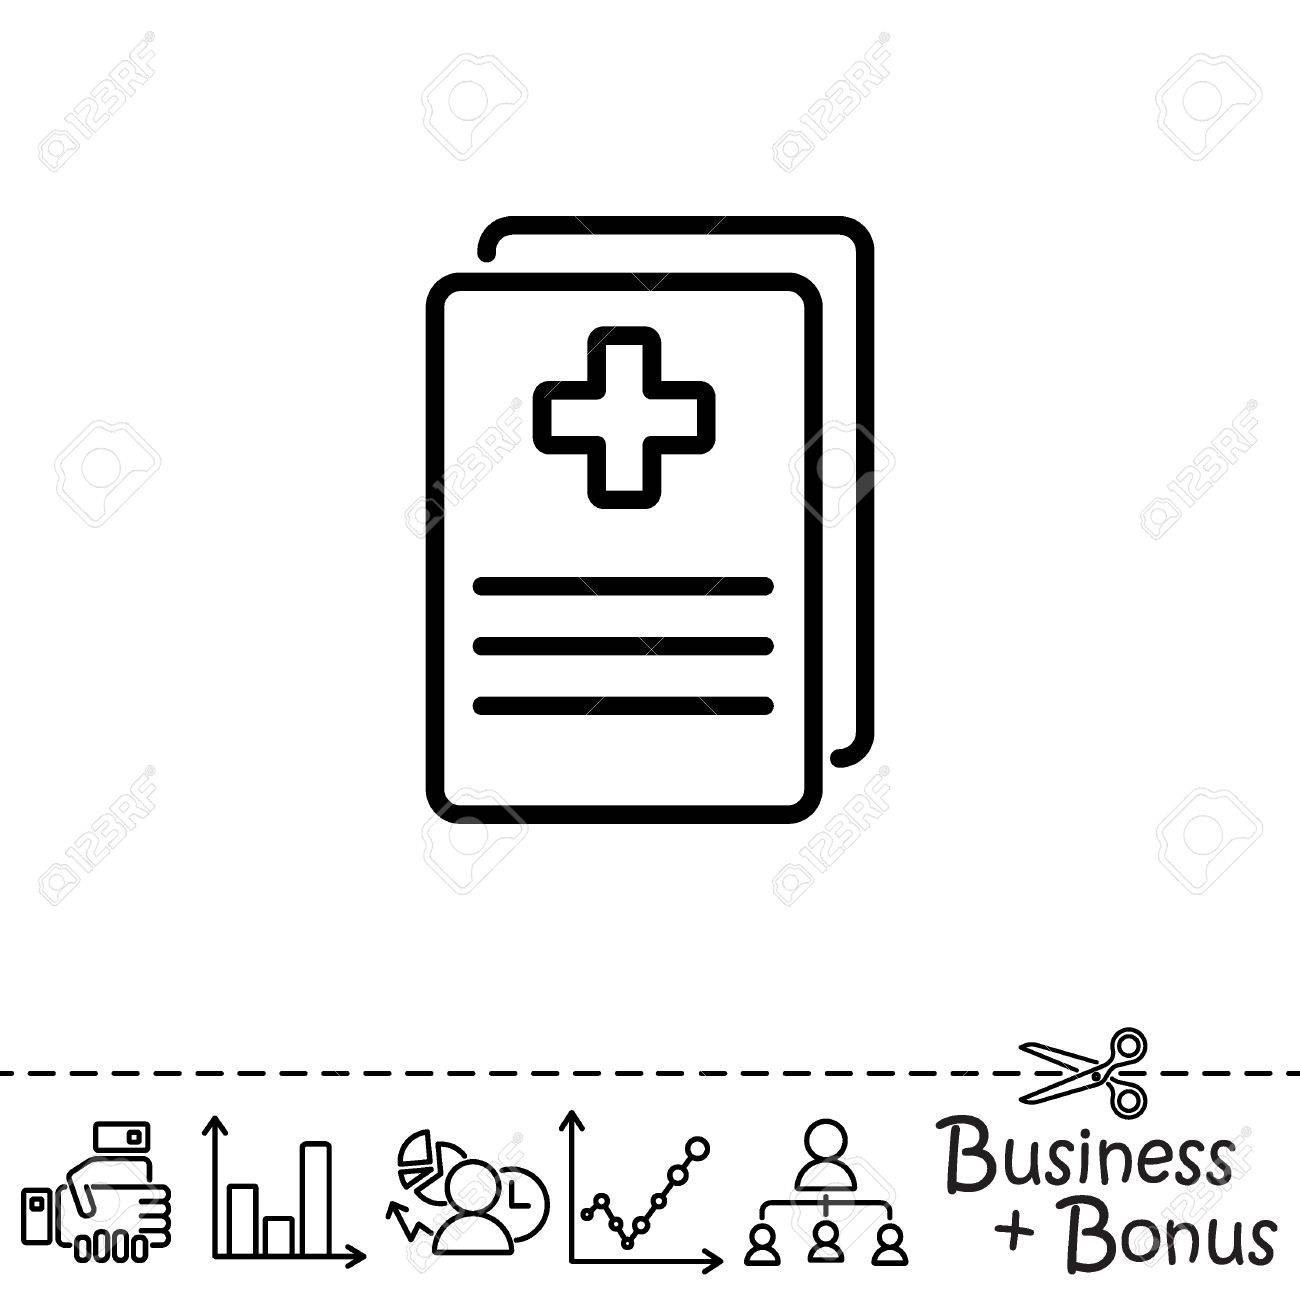 graphic regarding Free Medical Forms.com identified as Net line icon. Healthcare varieties, healthcare certification